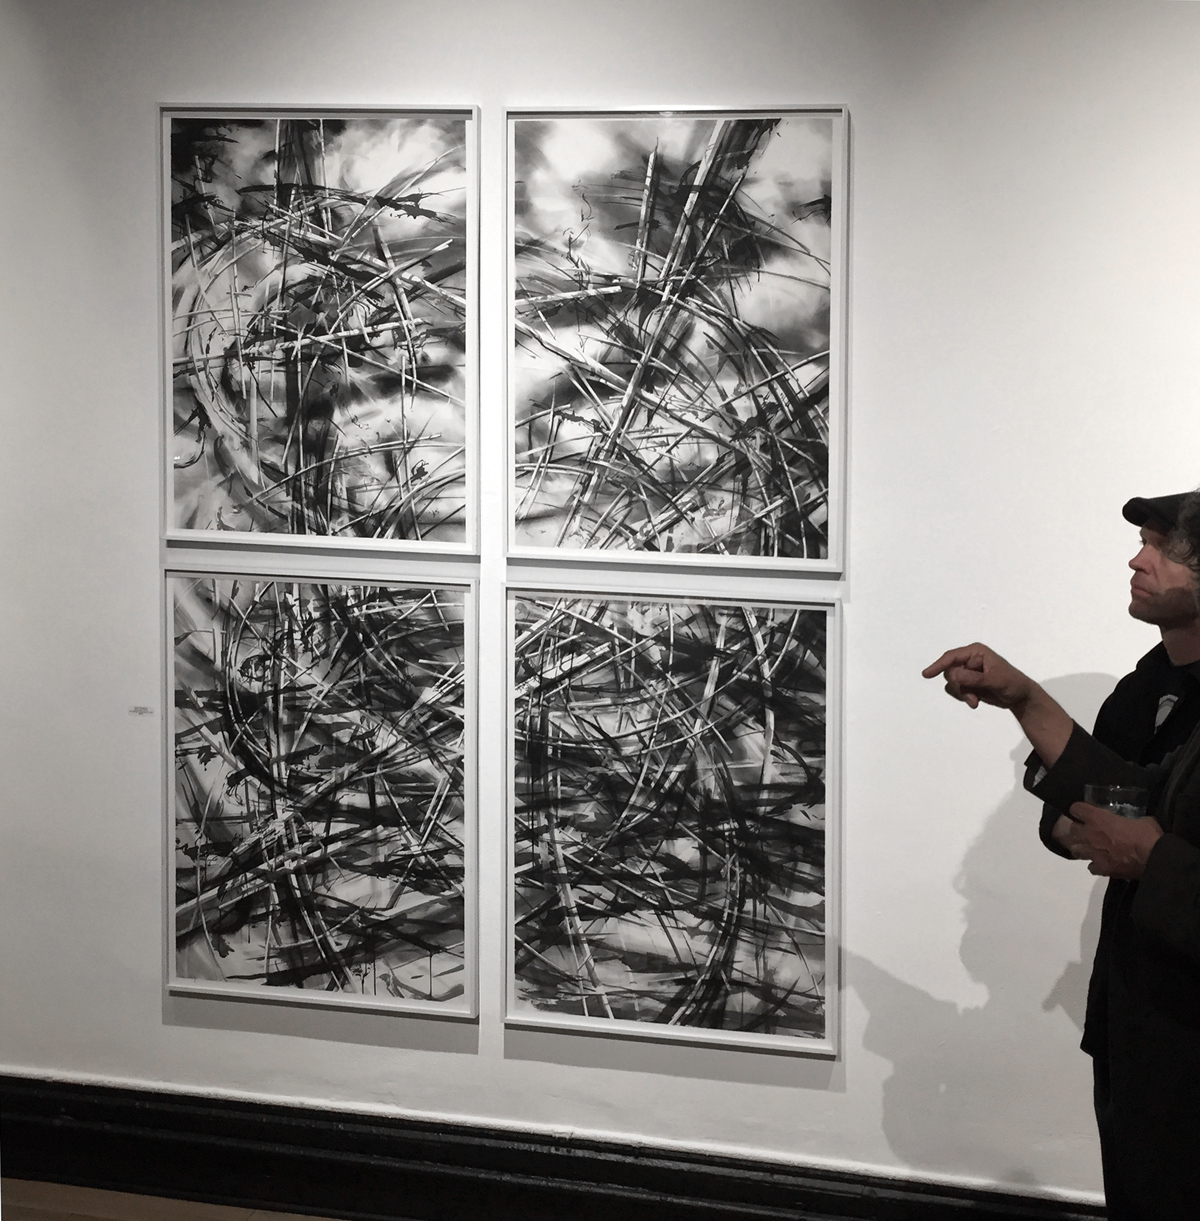 recent drawings and openings 111 Minna Gallery opening